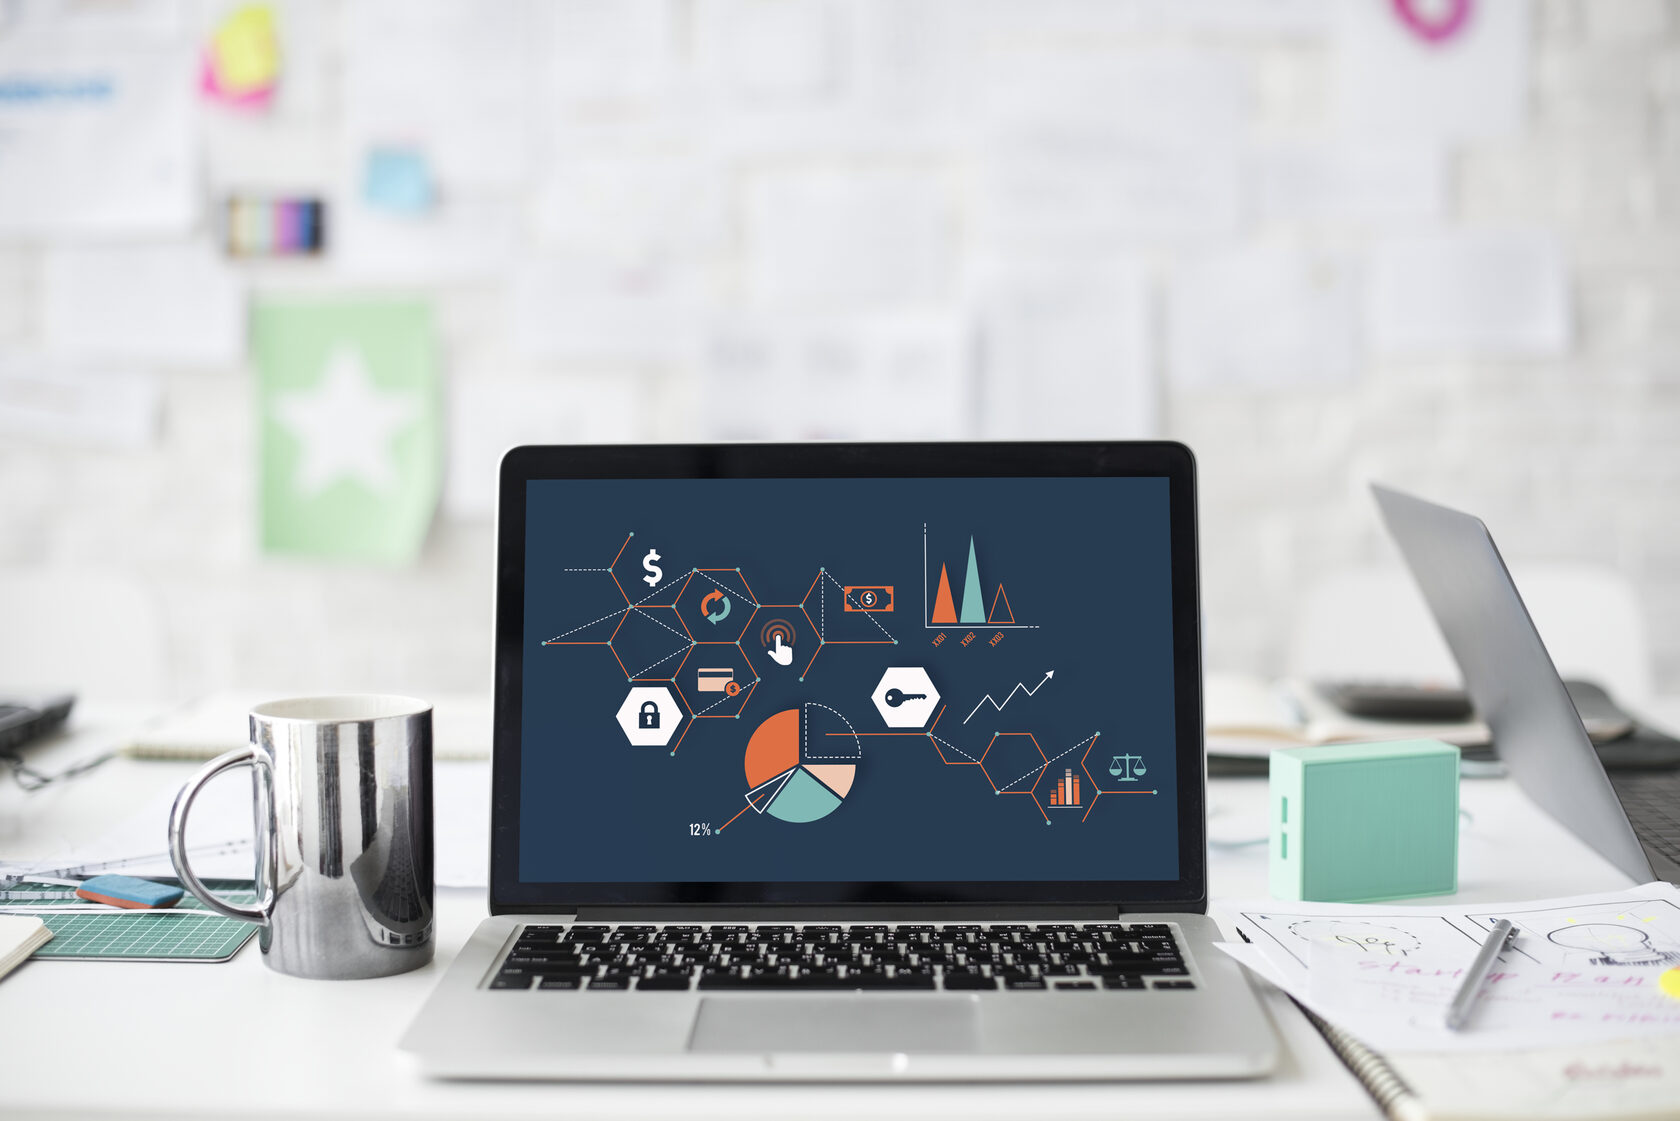 Laptop with the image of growth graphs and charts